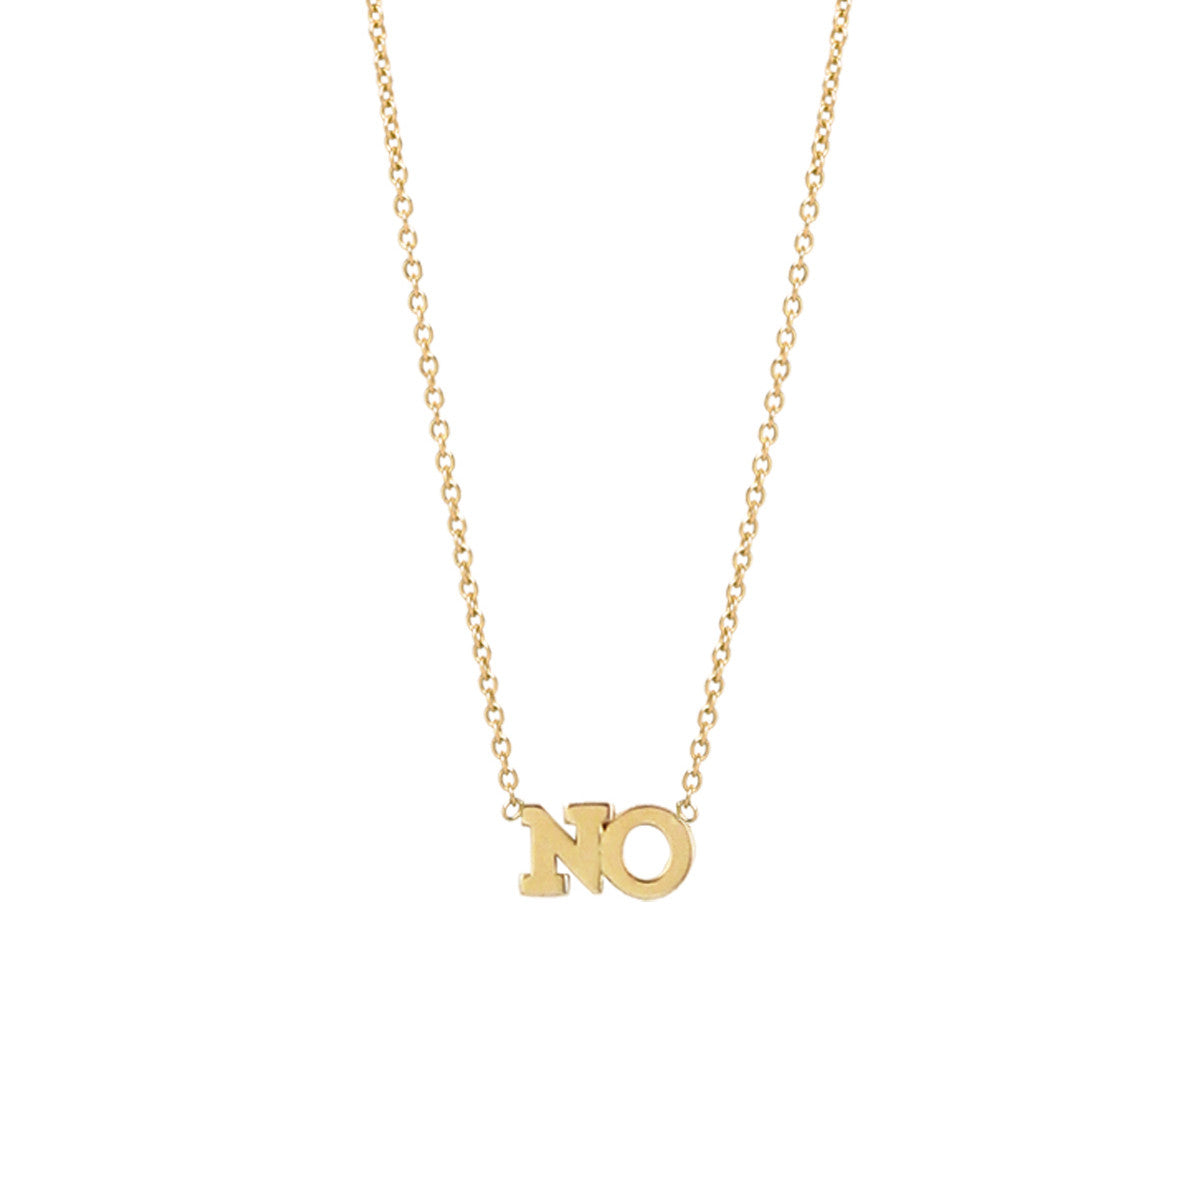 Zoë Chicco Two-Letter Pendant Necklace with Diamond K0ahINeG